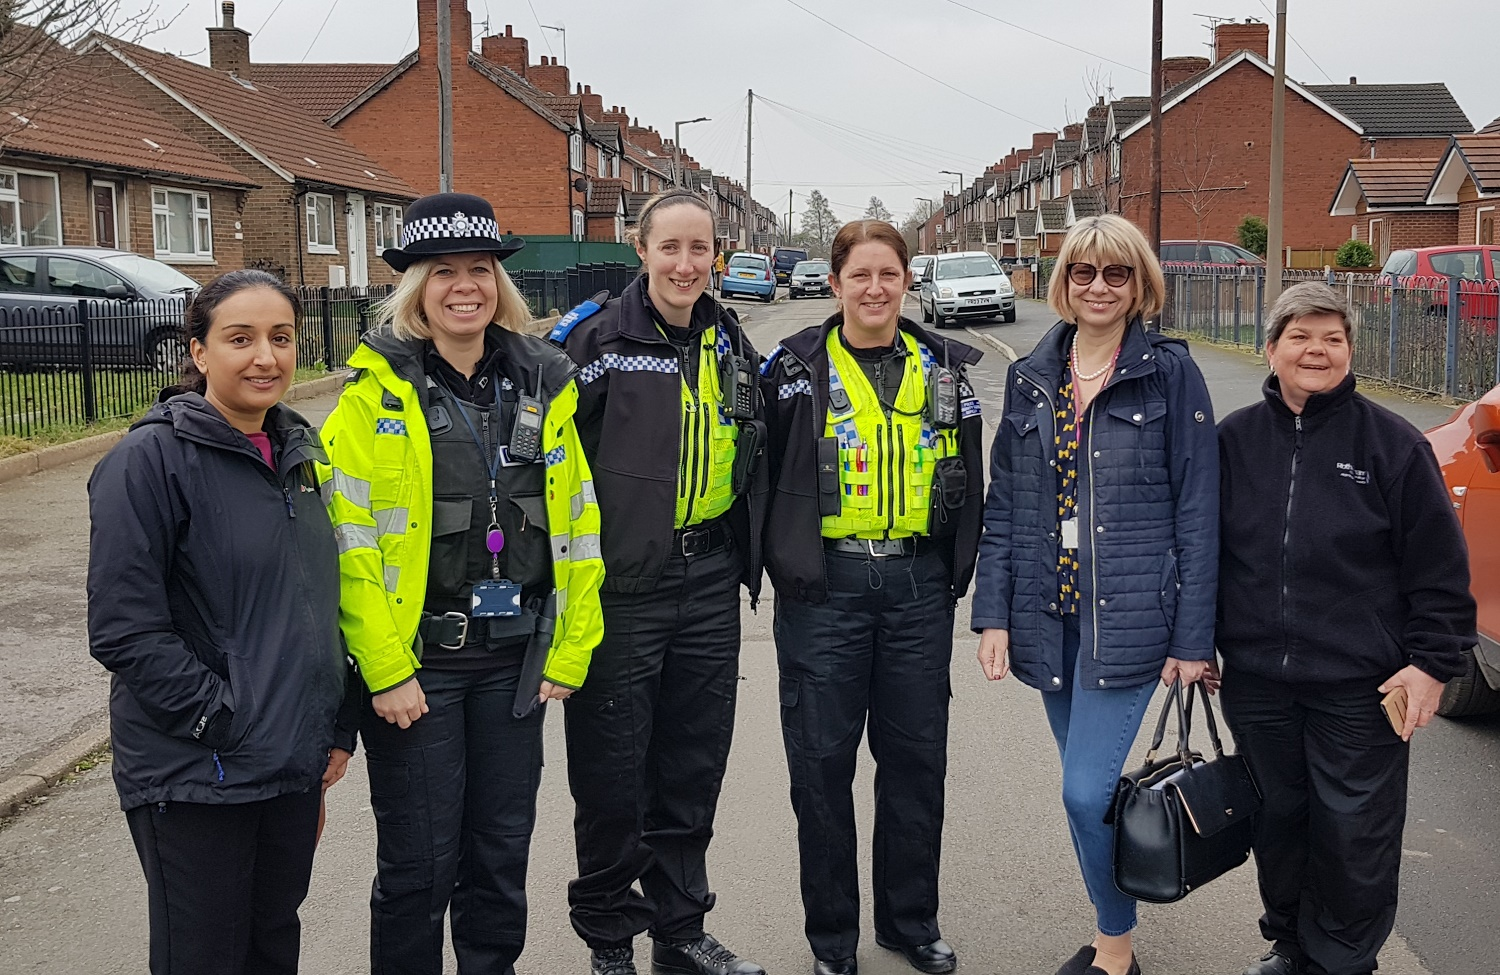 Rotherham South Neighbourhood Team with RMBC colleagues